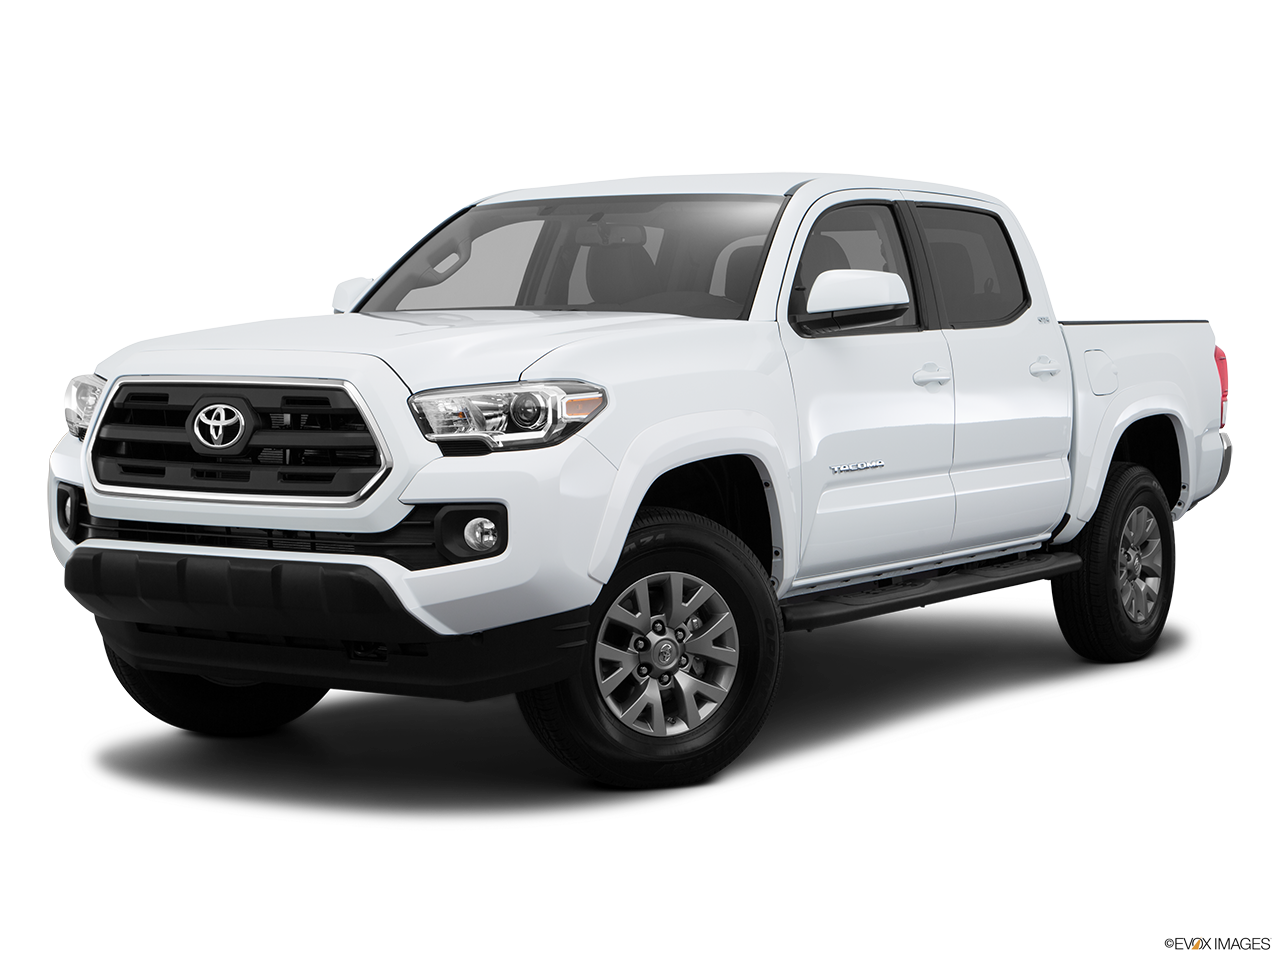 2017 toyota tacoma dealer in east syracuse romano toyota. Black Bedroom Furniture Sets. Home Design Ideas